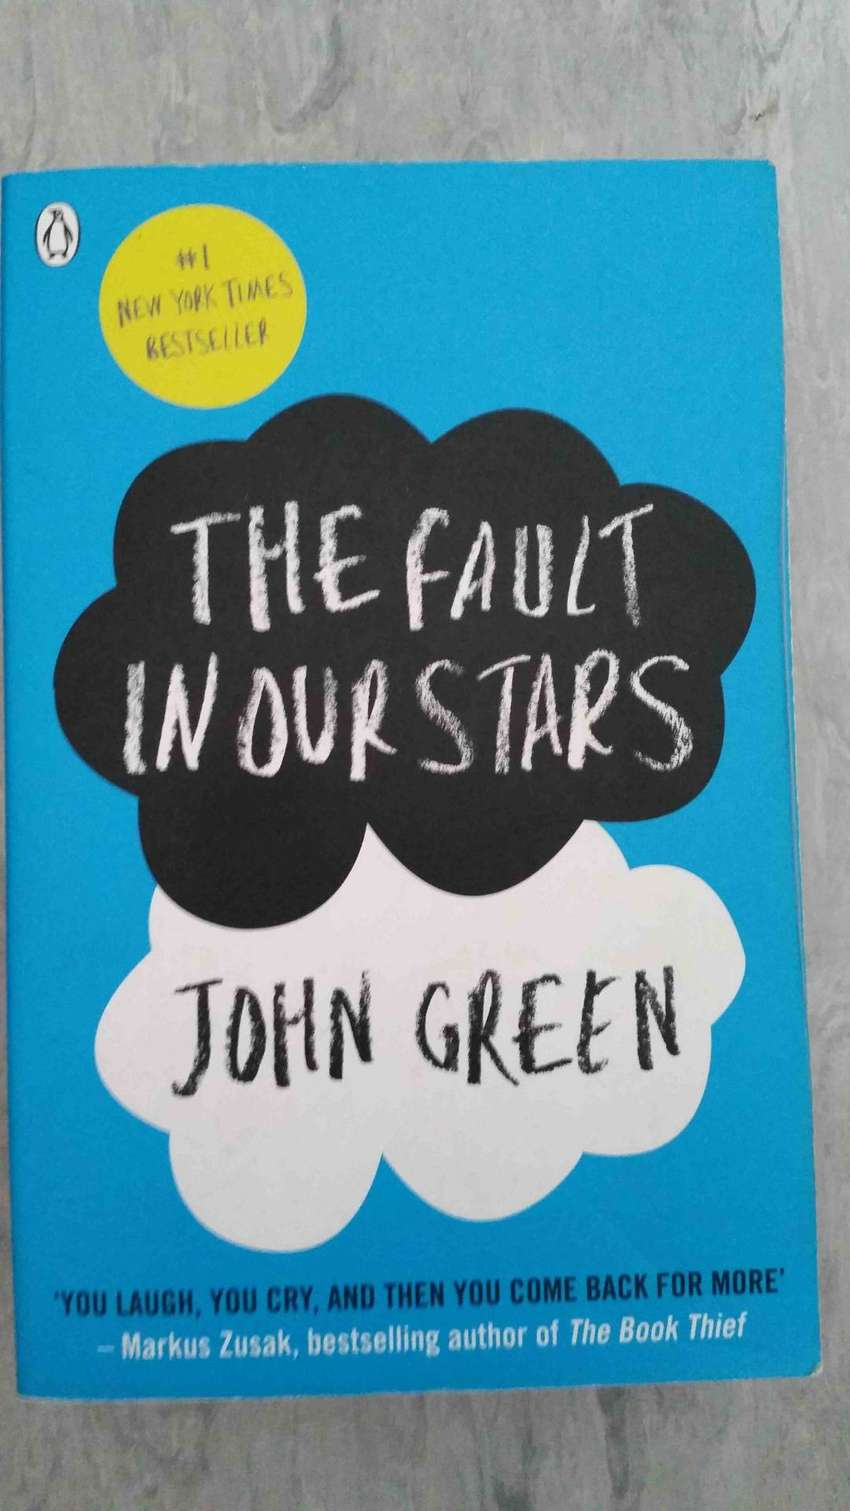 The Fault in our stars - John Green book 0